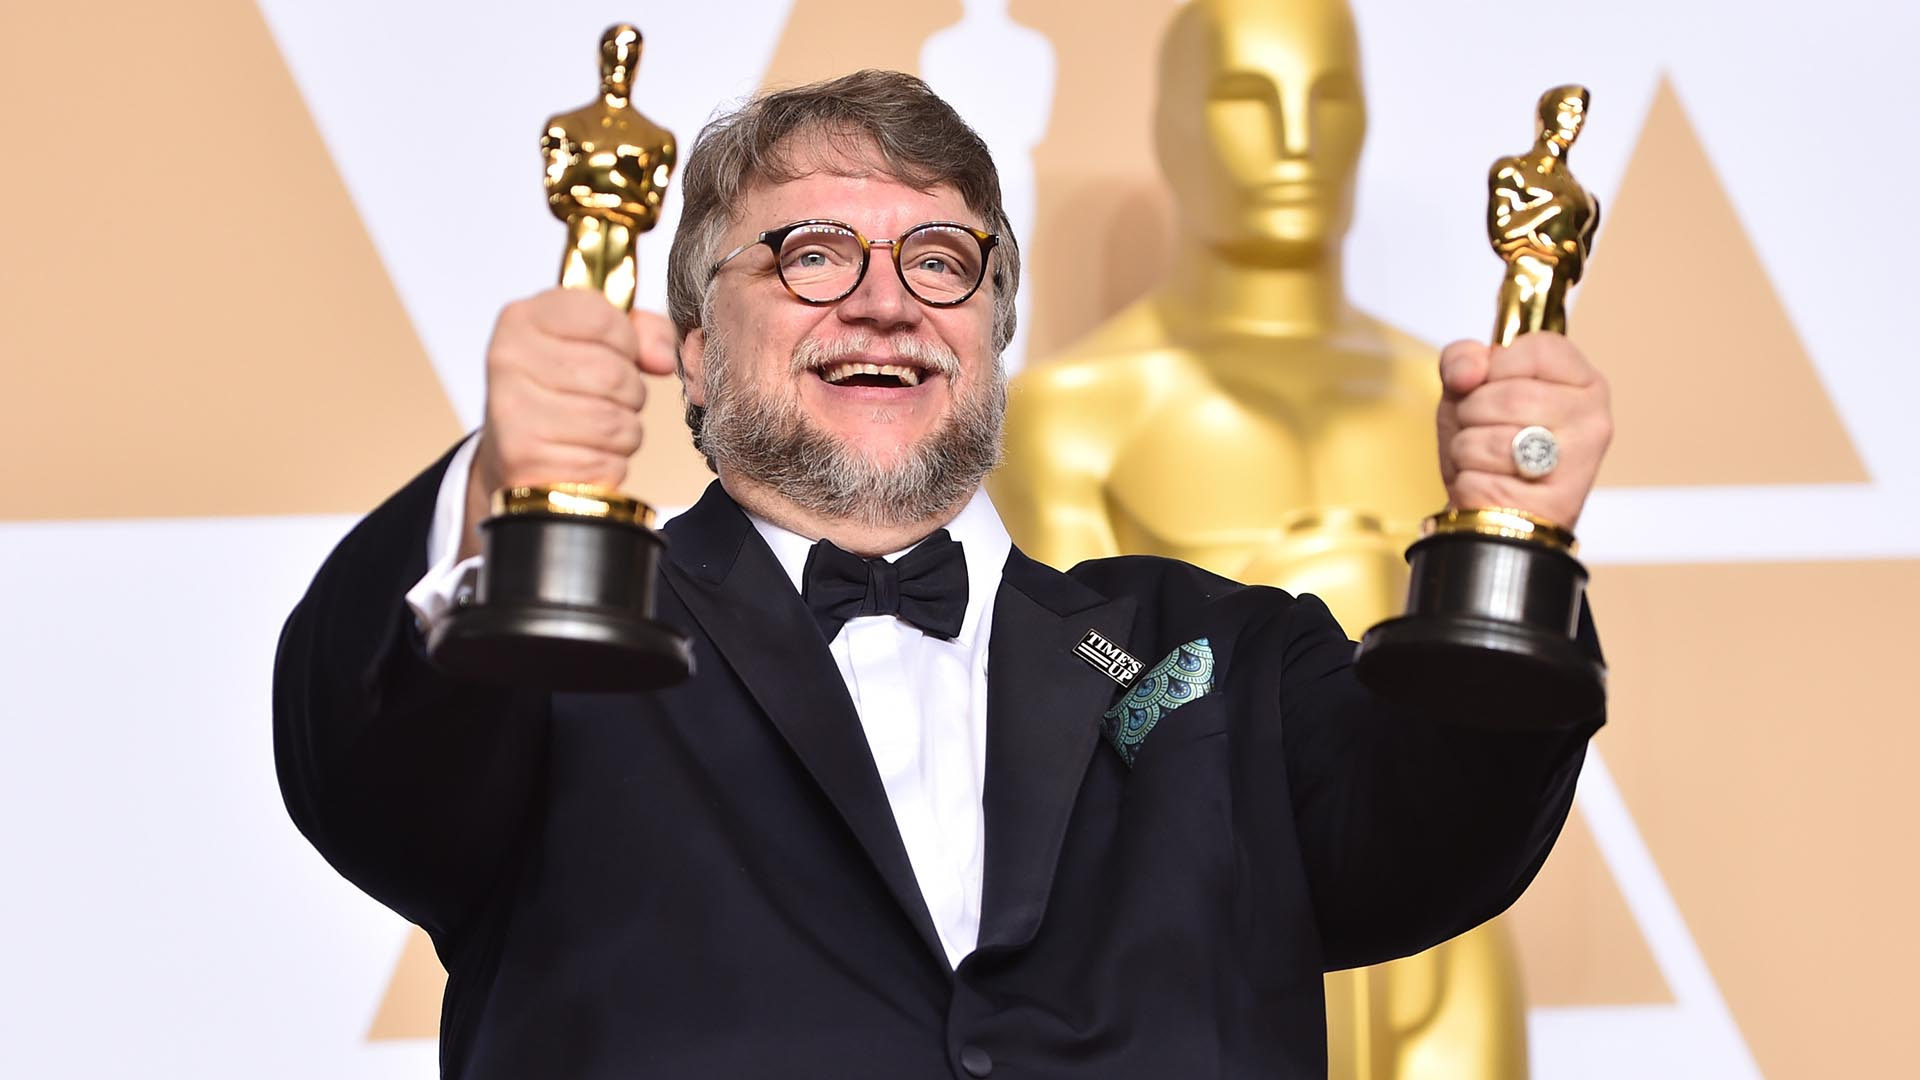 HOLLYWOOD, CA - MARCH 04: Filmmaker Guillermo del Toro, winner of the Best Director and Best Picture awards for 'The Shape of Water,' poses in the press room during the 90th Annual Academy Awards at Hollywood & Highland Center on March 4, 2018 in Hollywood, California. (Photo by Alberto E. Rodriguez/Getty Images)